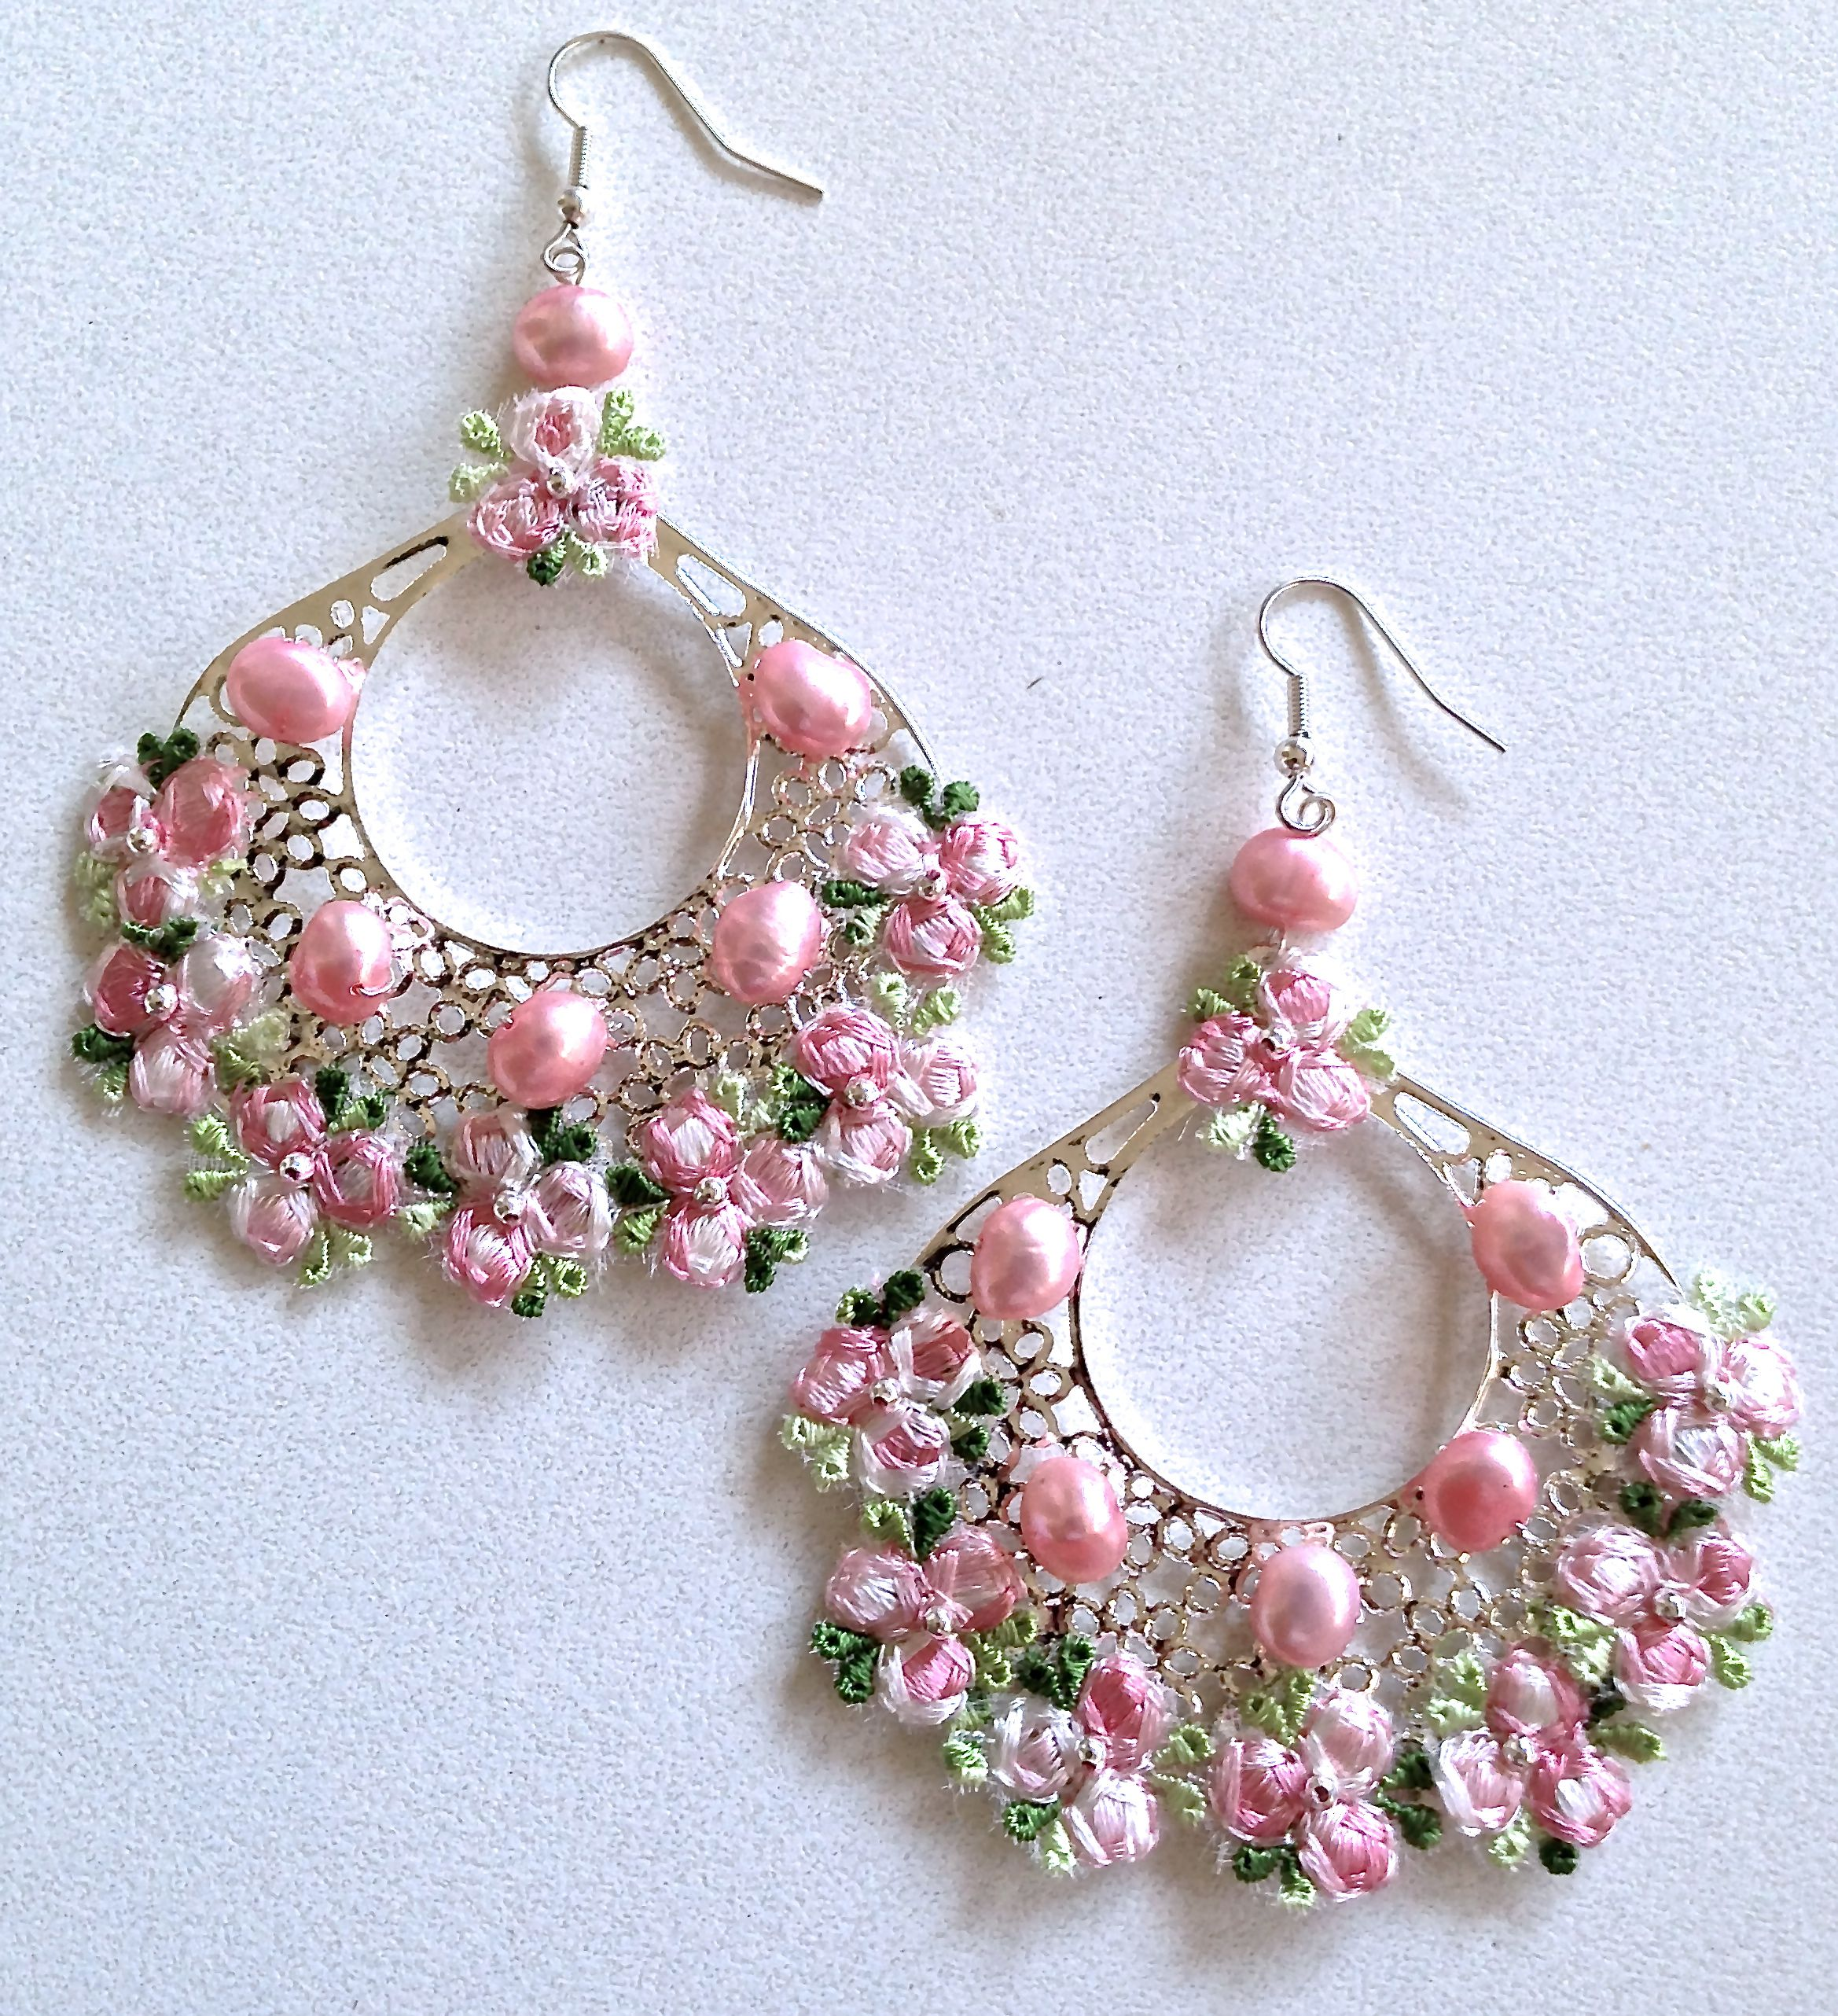 Pink Freshwater Pearls Amp Lace Chandelier Earrings By